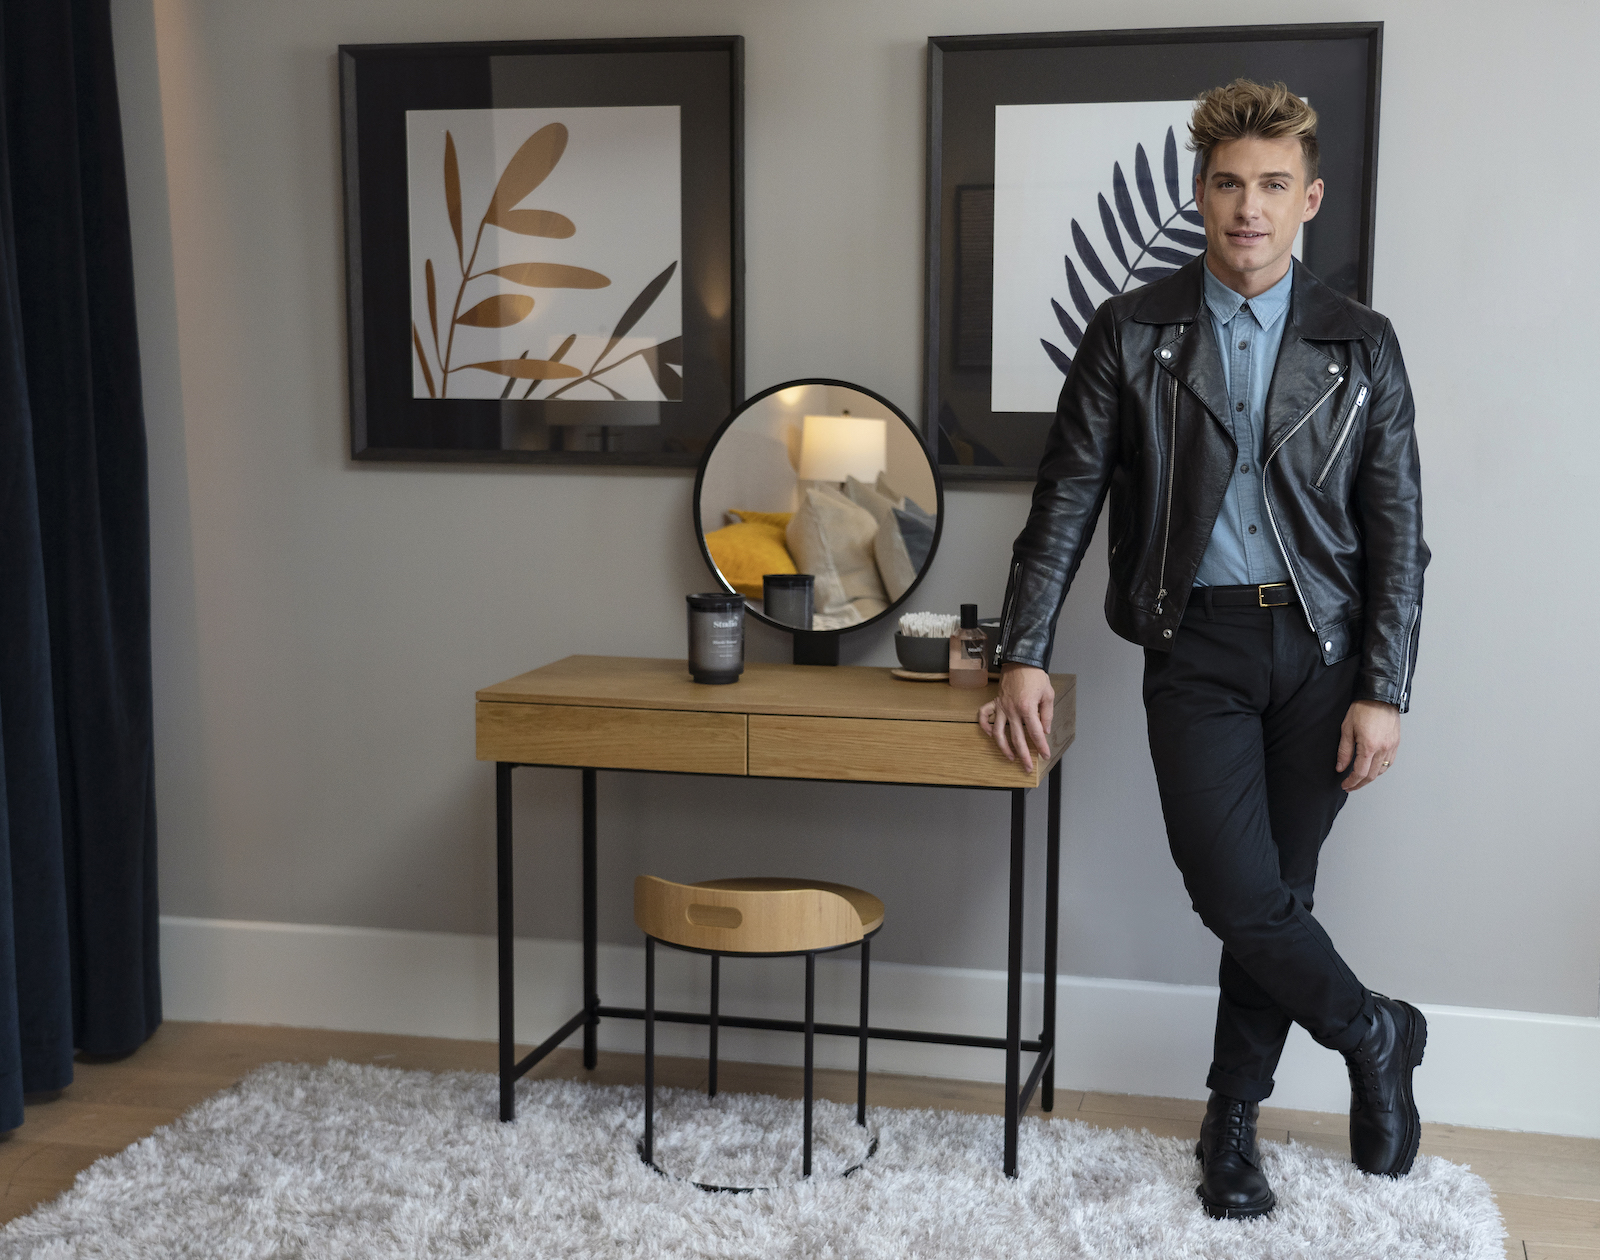 Jeremiah Brent from HGTV's Nate & Jeremiah Home Project